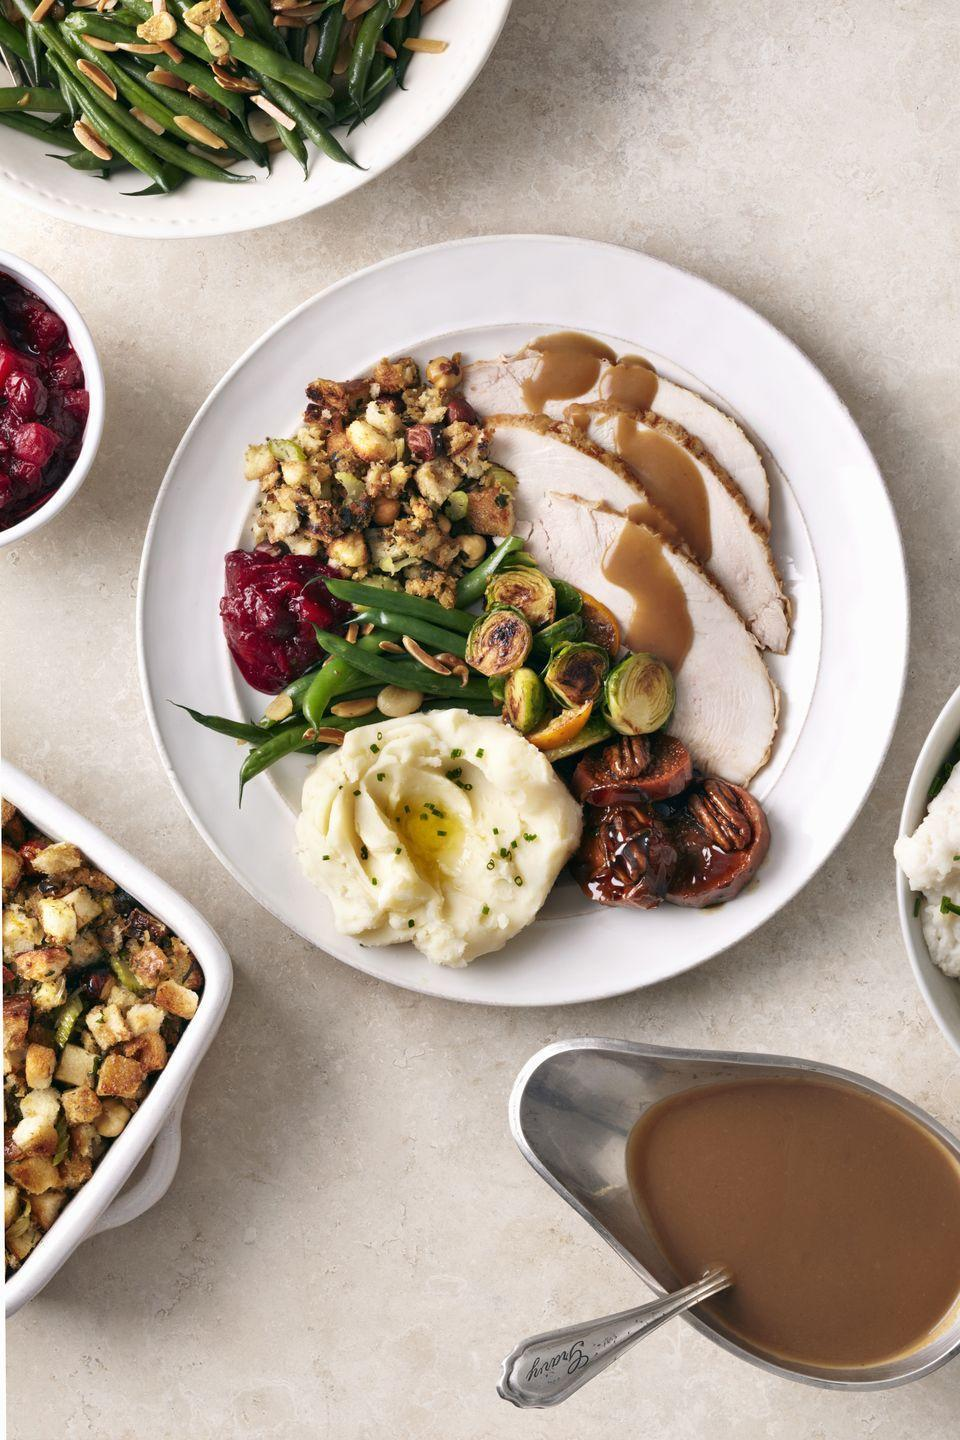 """<p>A juicy, flavorful turkey is almost guaranteed if you soak or """"brine"""" the bird in a saltwater bath before roasting, like the turkey featured on this festive menu.</p><p><strong>Starters:</strong></p><p><a href=""""https://www.countryliving.com/food-drinks/recipes/a1781/peppered-goat-cheese-citrus-carrot-marmalade-3900/"""" rel=""""nofollow noopener"""" target=""""_blank"""" data-ylk=""""slk:Peppered Goat Cheese with Citrus-Carrot Marmalade"""" class=""""link rapid-noclick-resp"""">Peppered Goat Cheese with Citrus-Carrot Marmalade</a></p><p><a href=""""https://www.countryliving.com/food-drinks/recipes/a1392/holiday-oyster-stew-3504/"""" rel=""""nofollow noopener"""" target=""""_blank"""" data-ylk=""""slk:Holiday Oyster Stew"""" class=""""link rapid-noclick-resp"""">Holiday Oyster Stew</a></p><p><a href=""""https://www.countryliving.com/food-drinks/recipes/a1025/kenyon-johnnycakes-3131/"""" rel=""""nofollow noopener"""" target=""""_blank"""" data-ylk=""""slk:Kenyon Johnnycakes"""" class=""""link rapid-noclick-resp"""">Kenyon Johnnycakes</a></p><p><strong>Main Course</strong>:</p><p><a href=""""https://www.countryliving.com/food-drinks/recipes/a1137/roasted-apple-turkey-apple-brandy-gravy-3248/"""" rel=""""nofollow noopener"""" target=""""_blank"""" data-ylk=""""slk:Roasted Apple Turkey with Apple Brandy Gravy"""" class=""""link rapid-noclick-resp"""">Roasted Apple Turkey with Apple Brandy Gravy</a></p><p><strong>Side Dishes</strong>:</p><p><a href=""""https://www.countryliving.com/food-drinks/recipes/a1789/cranberry-pear-wild-rice-stuffing-3916/"""" rel=""""nofollow noopener"""" target=""""_blank"""" data-ylk=""""slk:Cranberry-Pear Wild-Rice Stuffing"""" class=""""link rapid-noclick-resp"""">Cranberry-Pear Wild-Rice Stuffing</a></p><p><a href=""""https://www.countryliving.com/food-drinks/recipes/a1372/triple-cranberry-sauce-3484/"""" rel=""""nofollow noopener"""" target=""""_blank"""" data-ylk=""""slk:Triple Cranberry Sauce"""" class=""""link rapid-noclick-resp"""">Triple Cranberry Sauce</a></p><p><a href=""""https://www.countryliving.com/food-drinks/recipes/a1344/whipped-root-vegetables-potatoes-3454/"""" rel=""""nofollow noopener"""" target=""""_blank"""" d"""